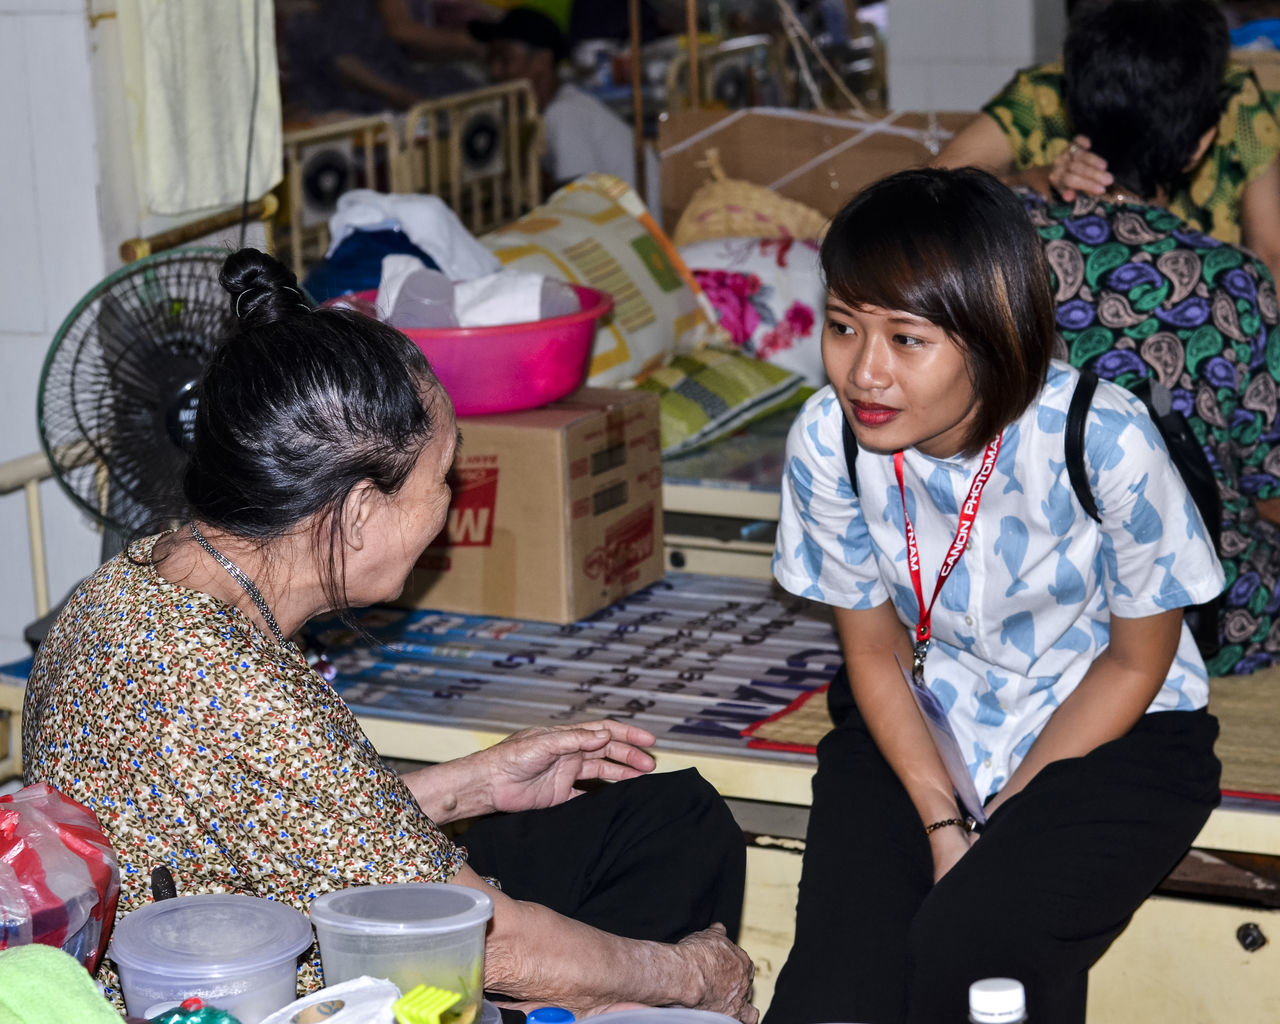 Viet Nam help portrait 2016 Adult Adults Only Business Finance And Industry Day Growth Help Portait Indoors  Indoors  Large Group Of People Lifestyles Mile Old Age Only Women People Photographer Real People Tailor Two People Viet Nam Help Volunteer Women Work Young Adult Young Women